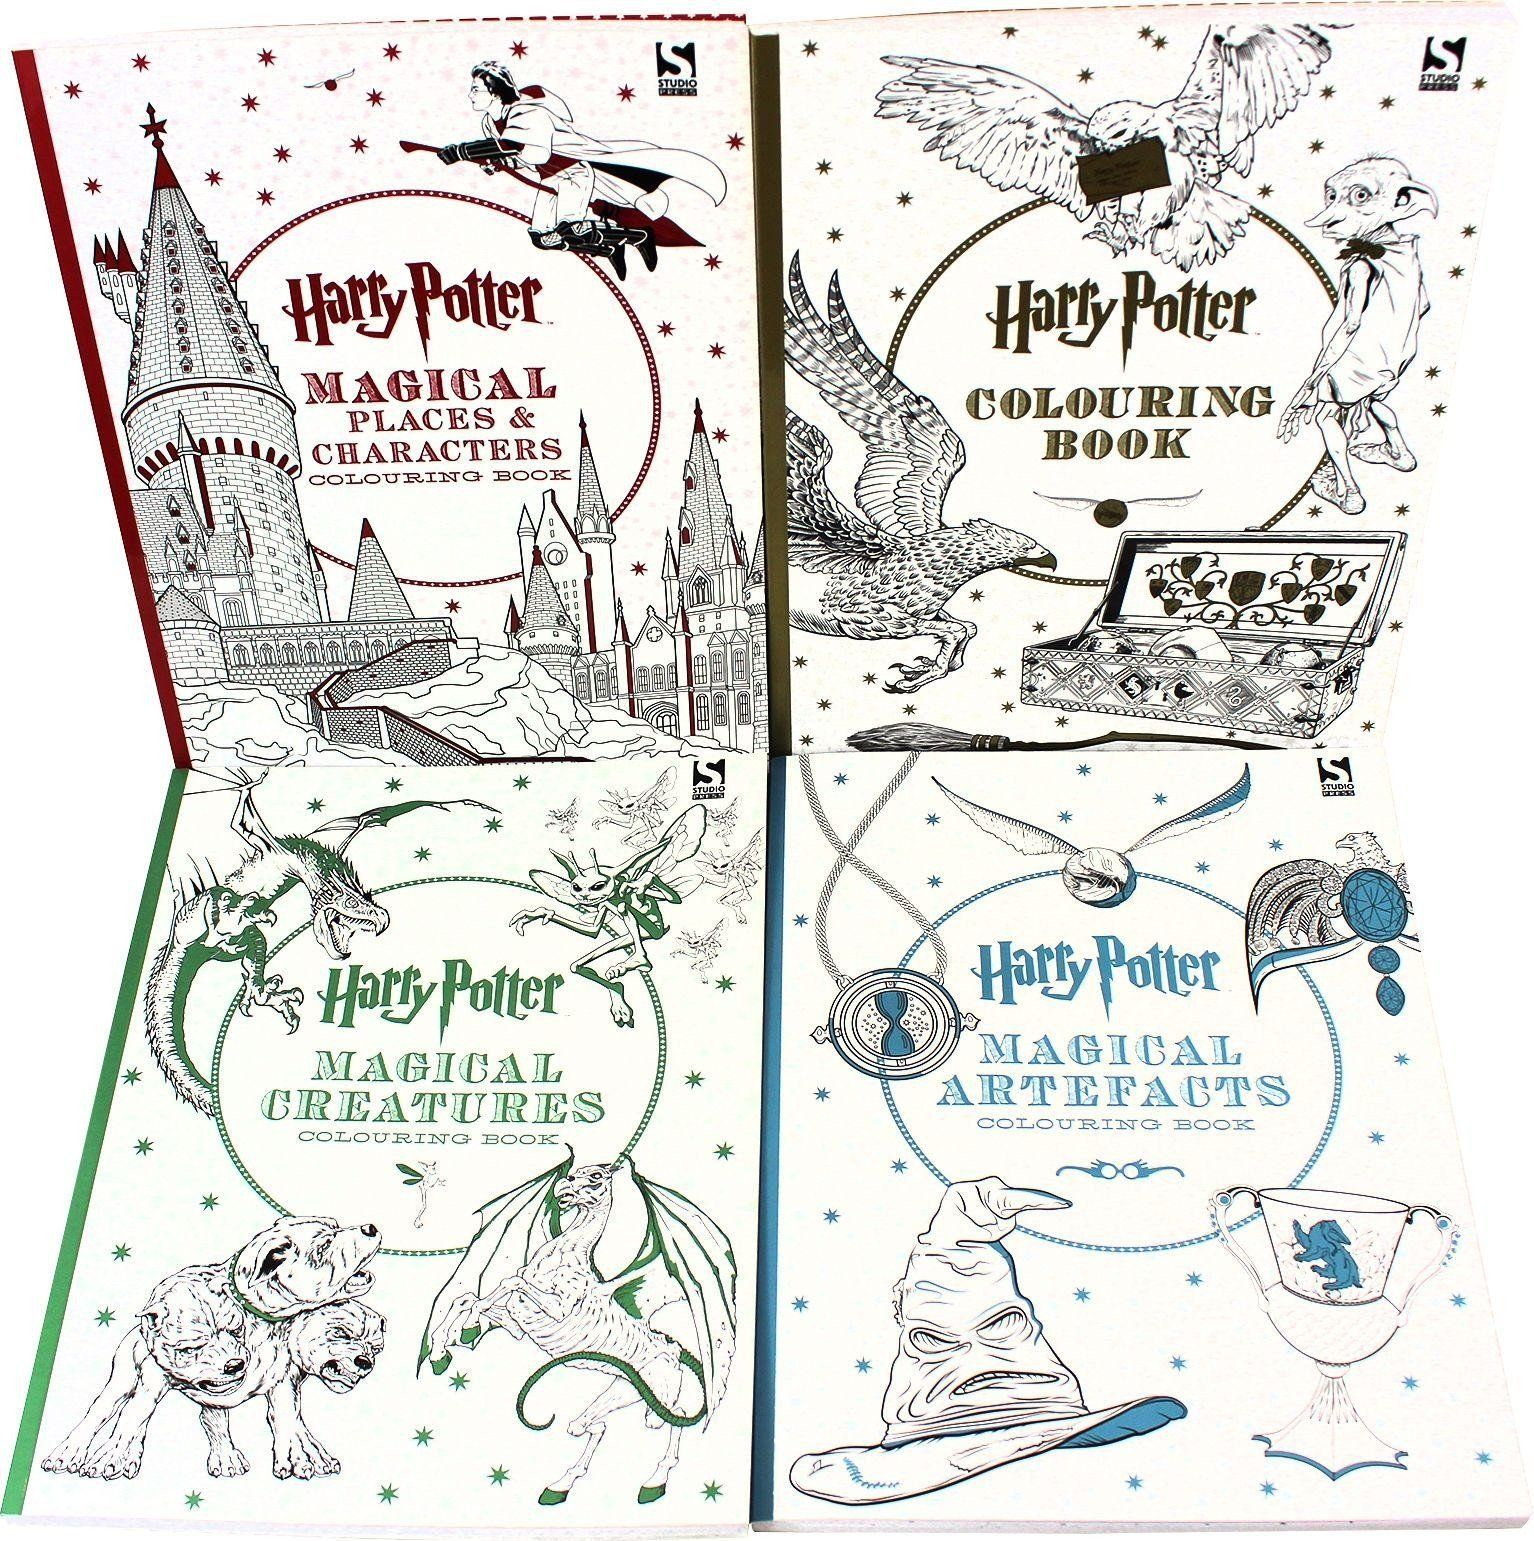 Harry Potter Coloring Book Luxury Coloring Pages Splendi Harry Potter Magical Places Ch Harry Potter Coloring Book Coloring Books Harry Potter Coloring Pages